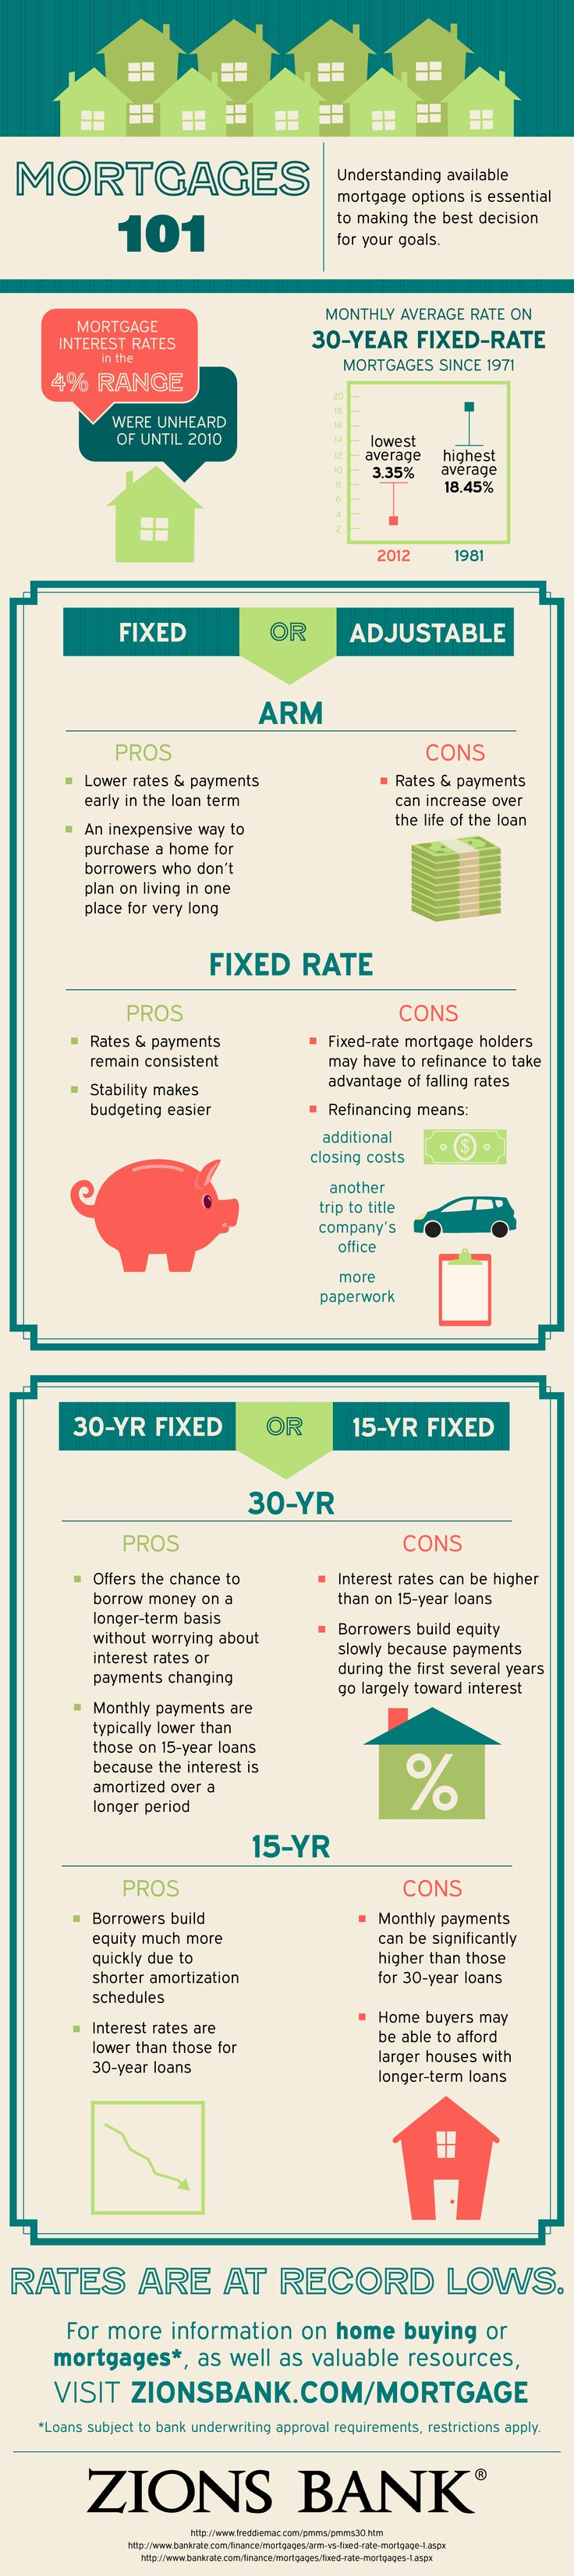 Mortgages 101: An Introduction to Interest Rates – Zions Bank Blog #infographic